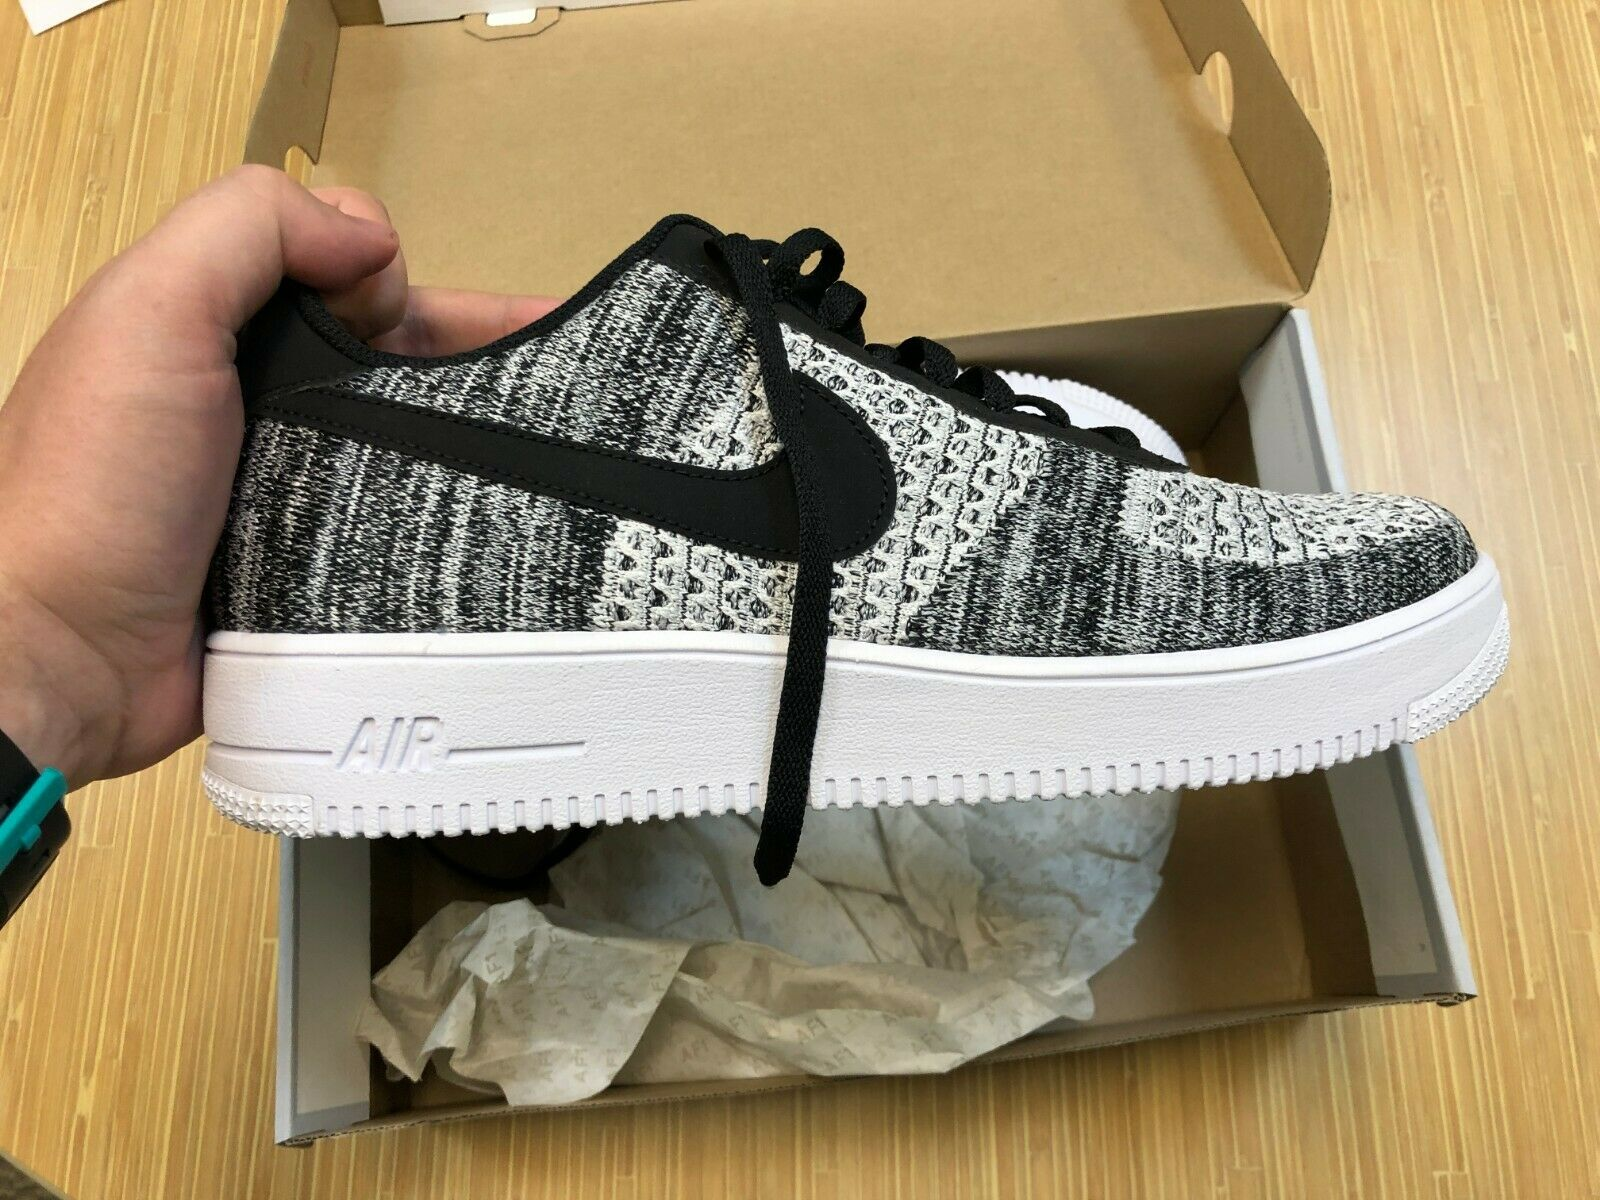 Nike Air Force 1 Ultra Flyknit Mid Black Mens Size 14 817420 004 FREE PRIORITY